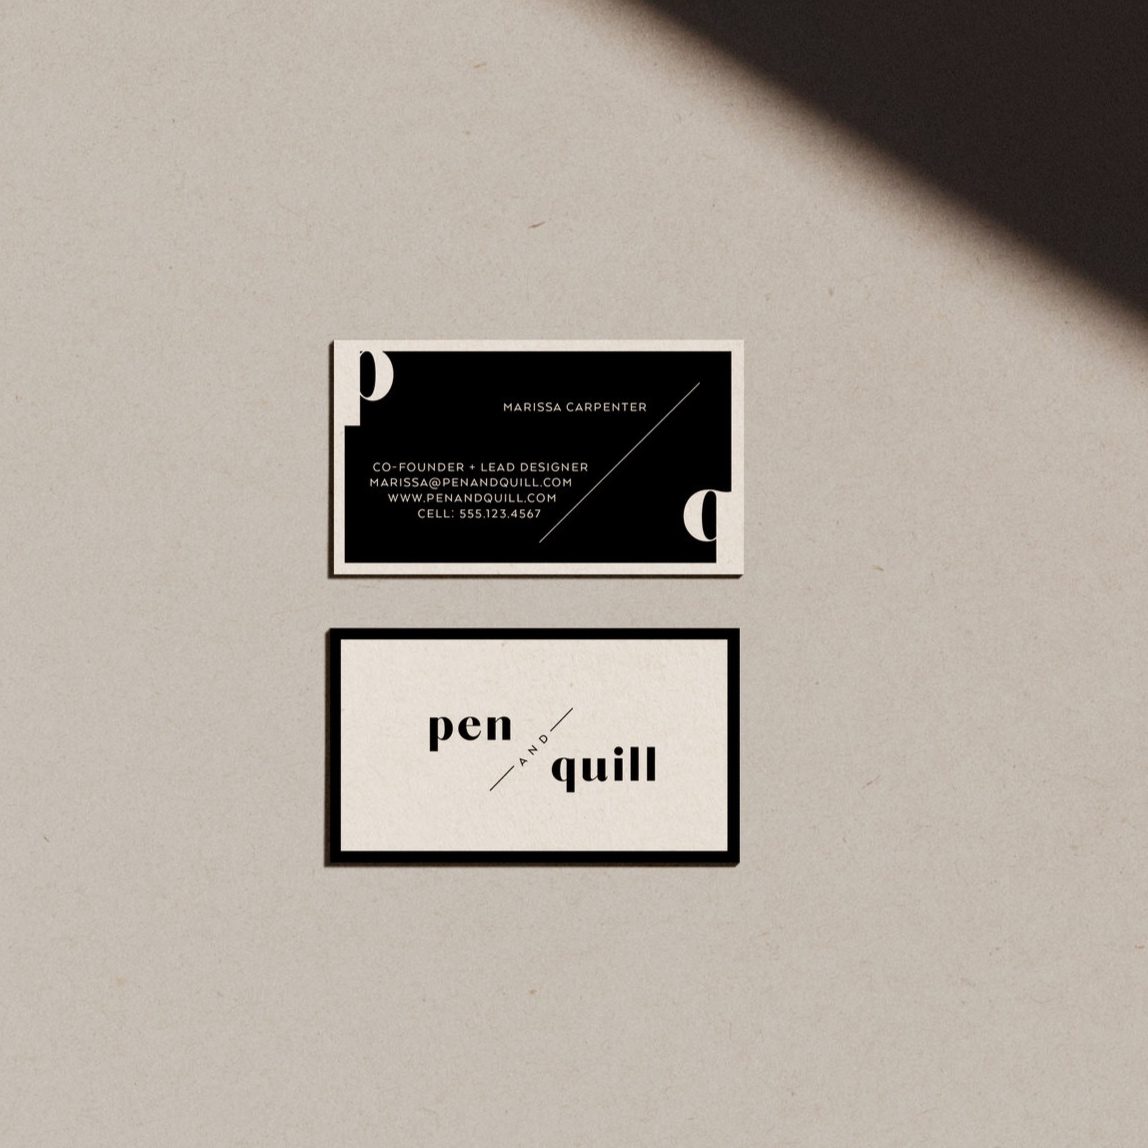 pen+and+quill+mockup.jpg